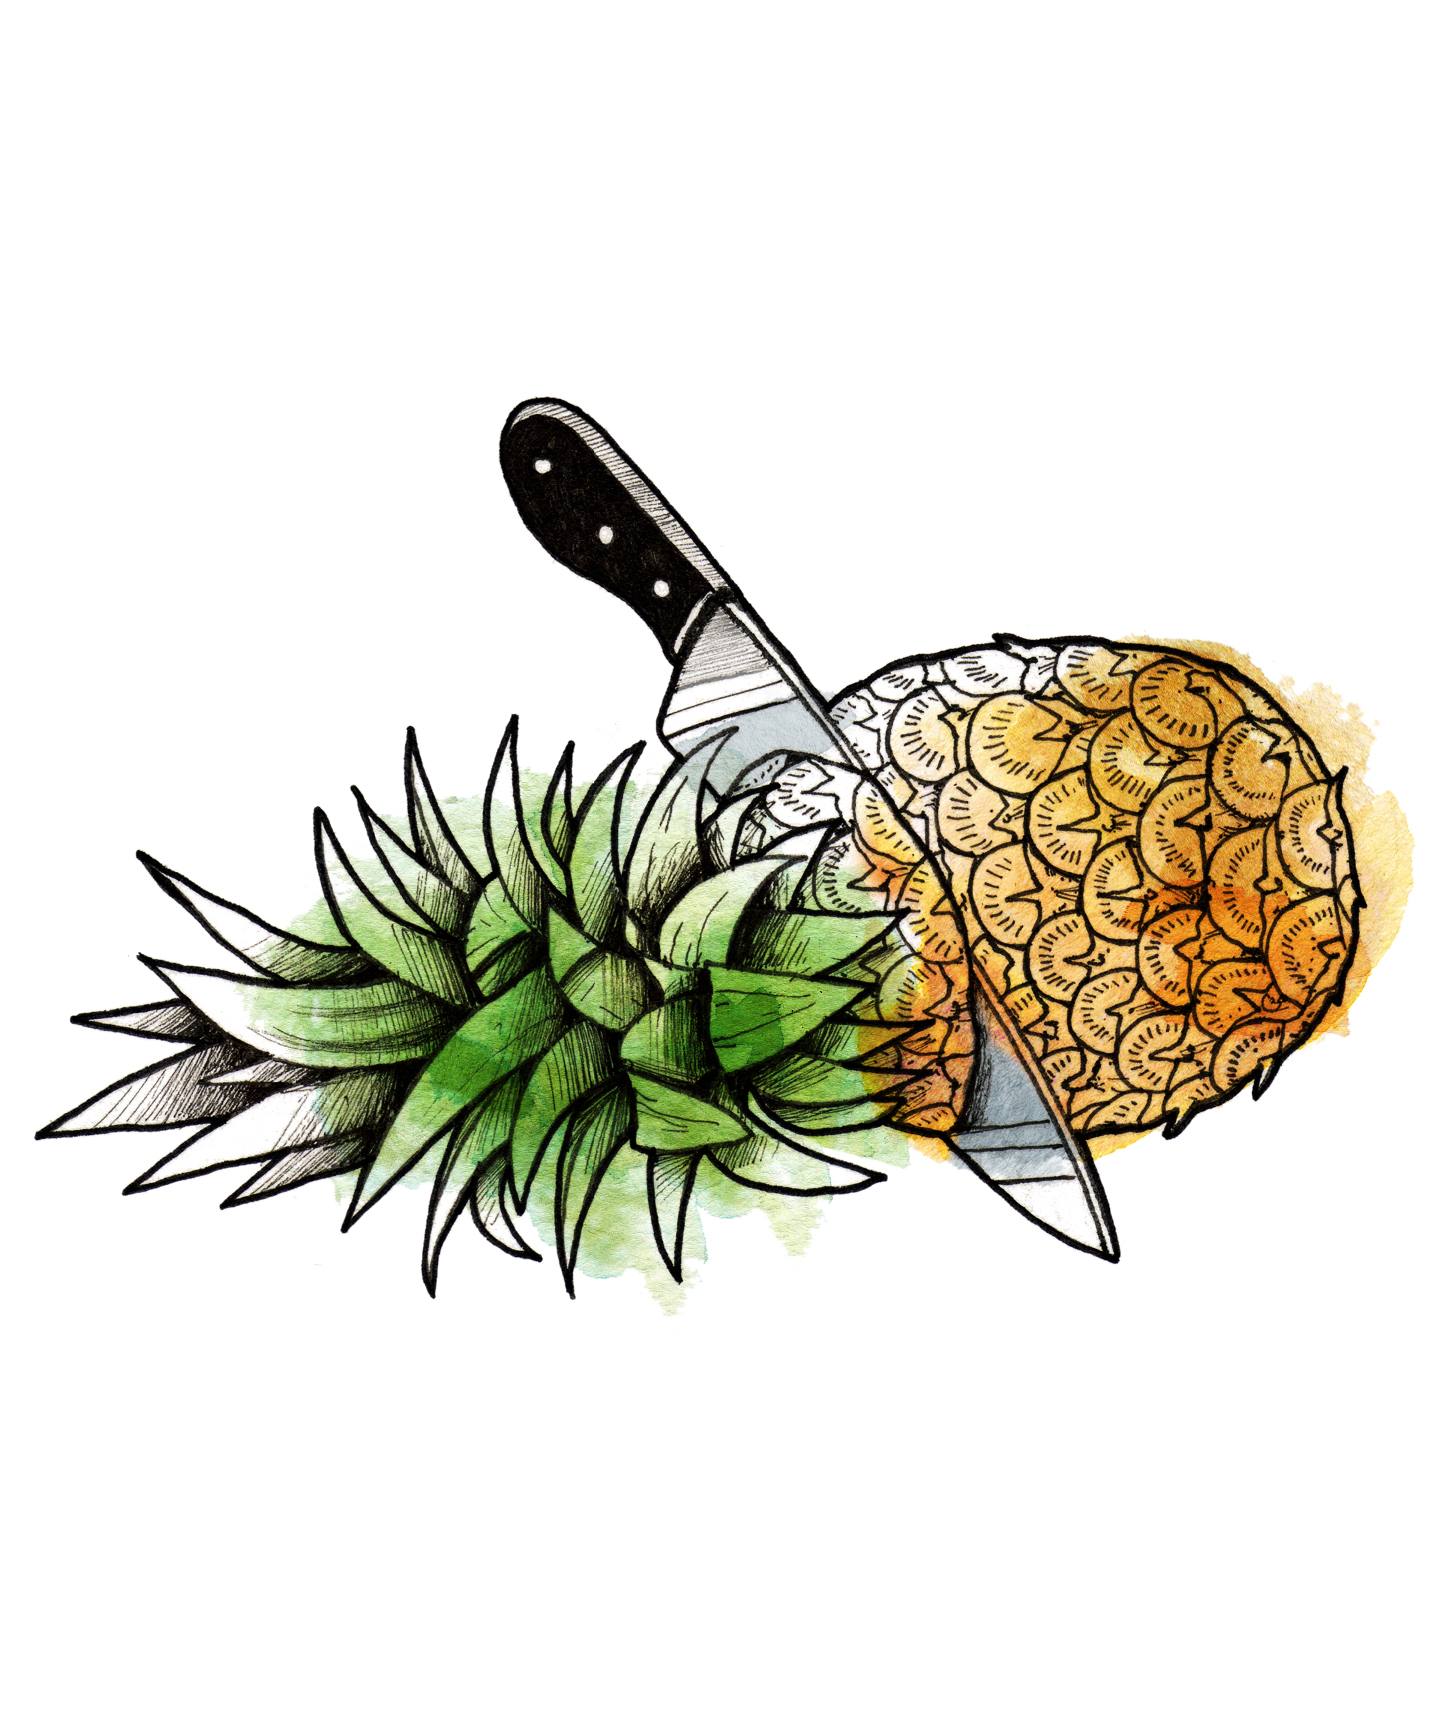 Illustration: Prepping a pineapple (How to carve pineapple jack-o-lantern - Prep the Fruit)